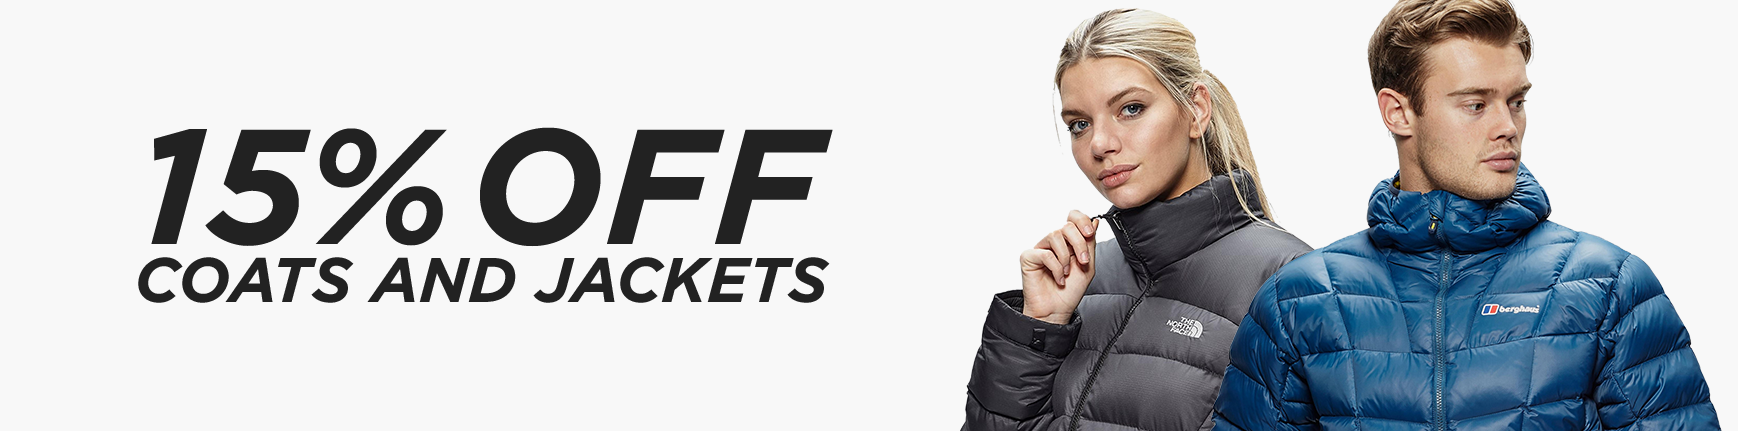 Millet Sports: 15% off coats and jackets